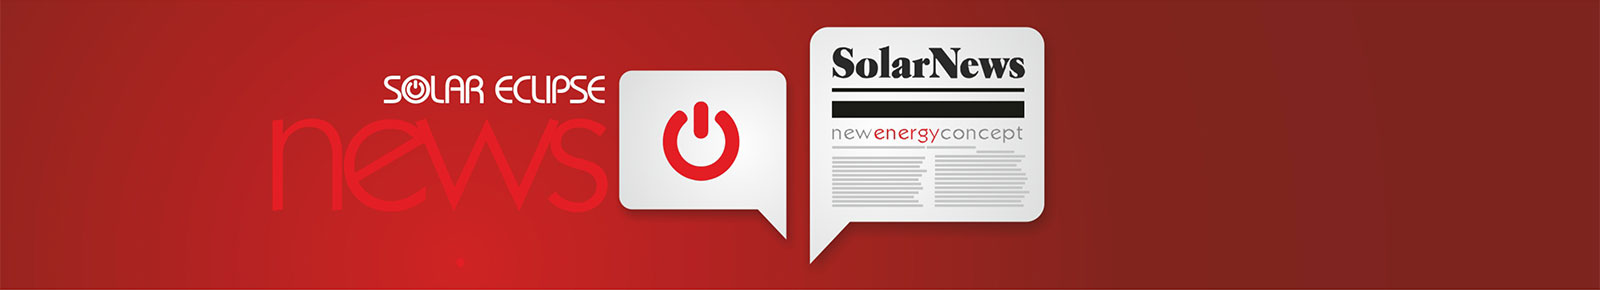 Solar Eclipse - Storage systems news